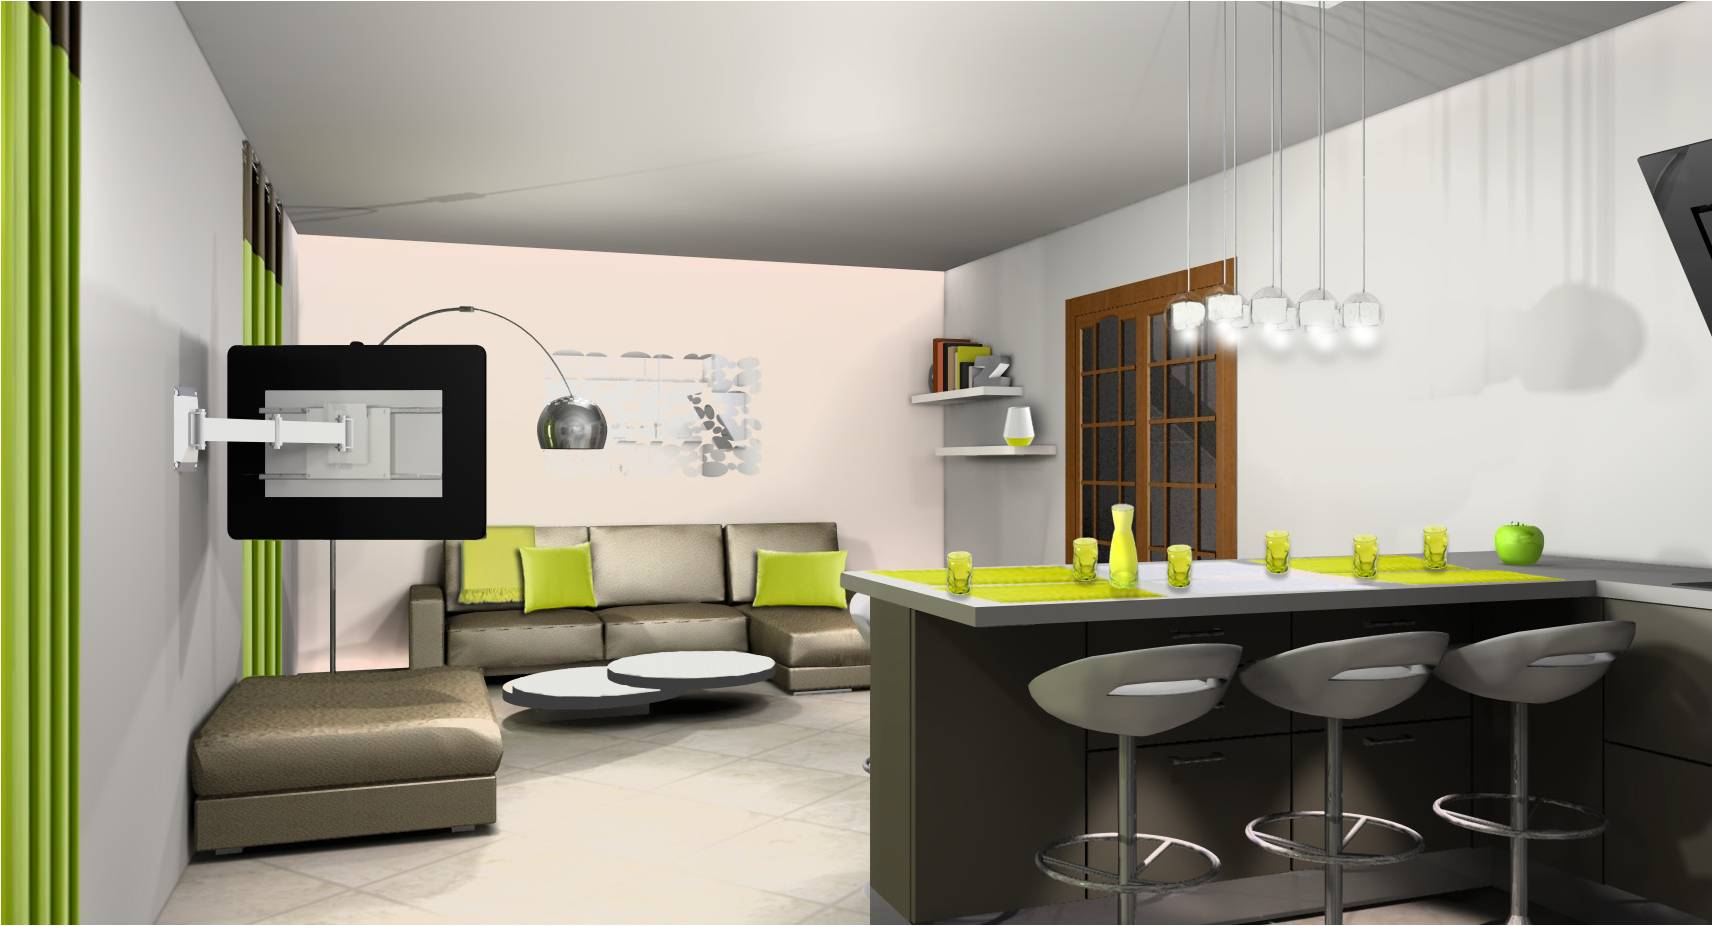 D co cuisine et salon exemples d 39 am nagements for Decoration de salon design